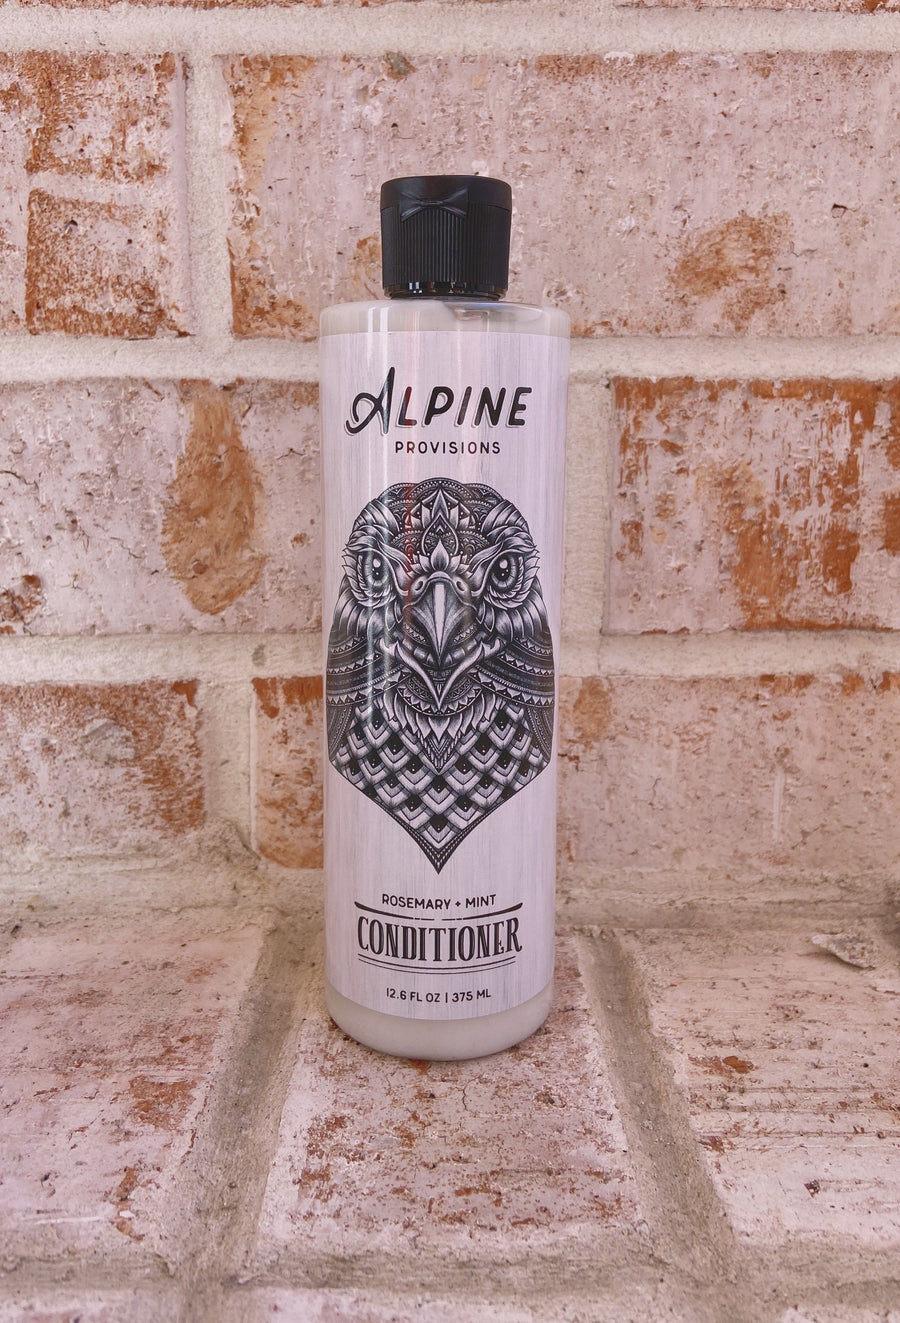 Alpine Provisions Rosemary Mint Conditioner